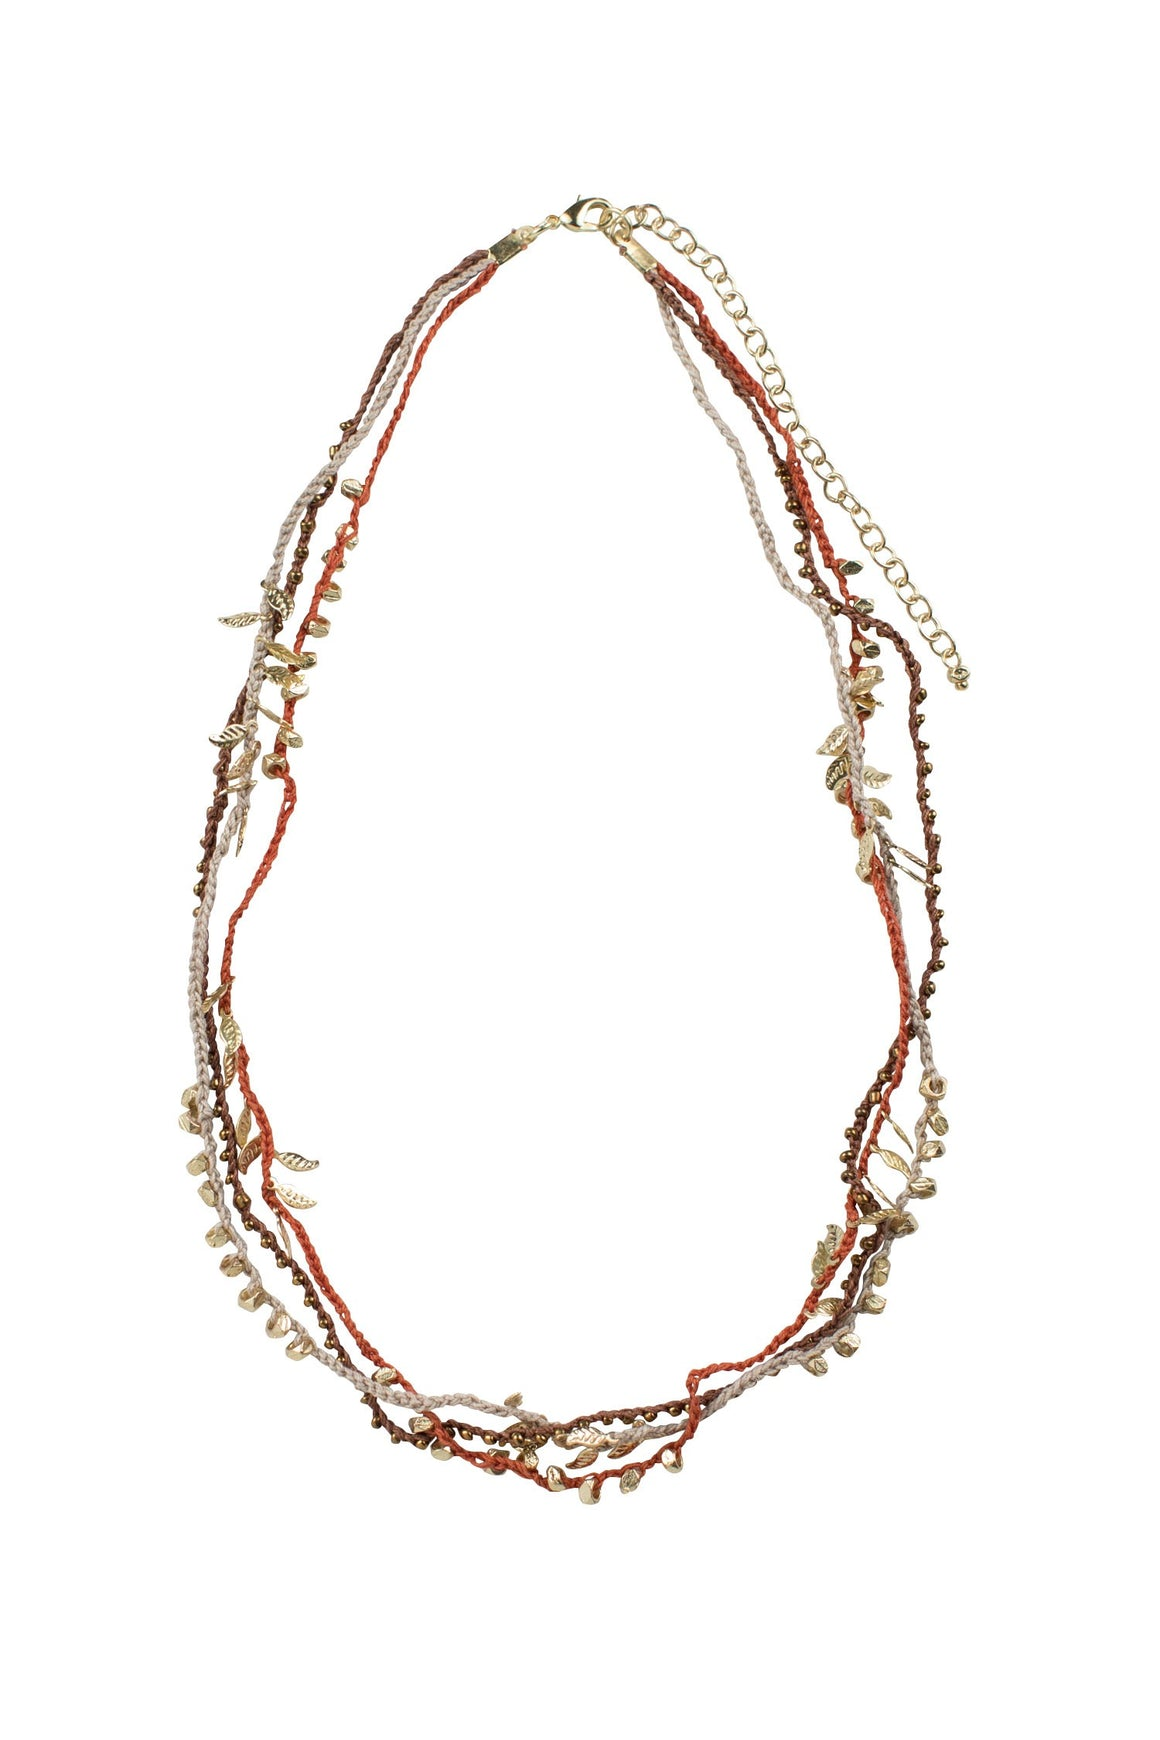 Braided Bits Crochet and Beads Necklace Handcrafted in India